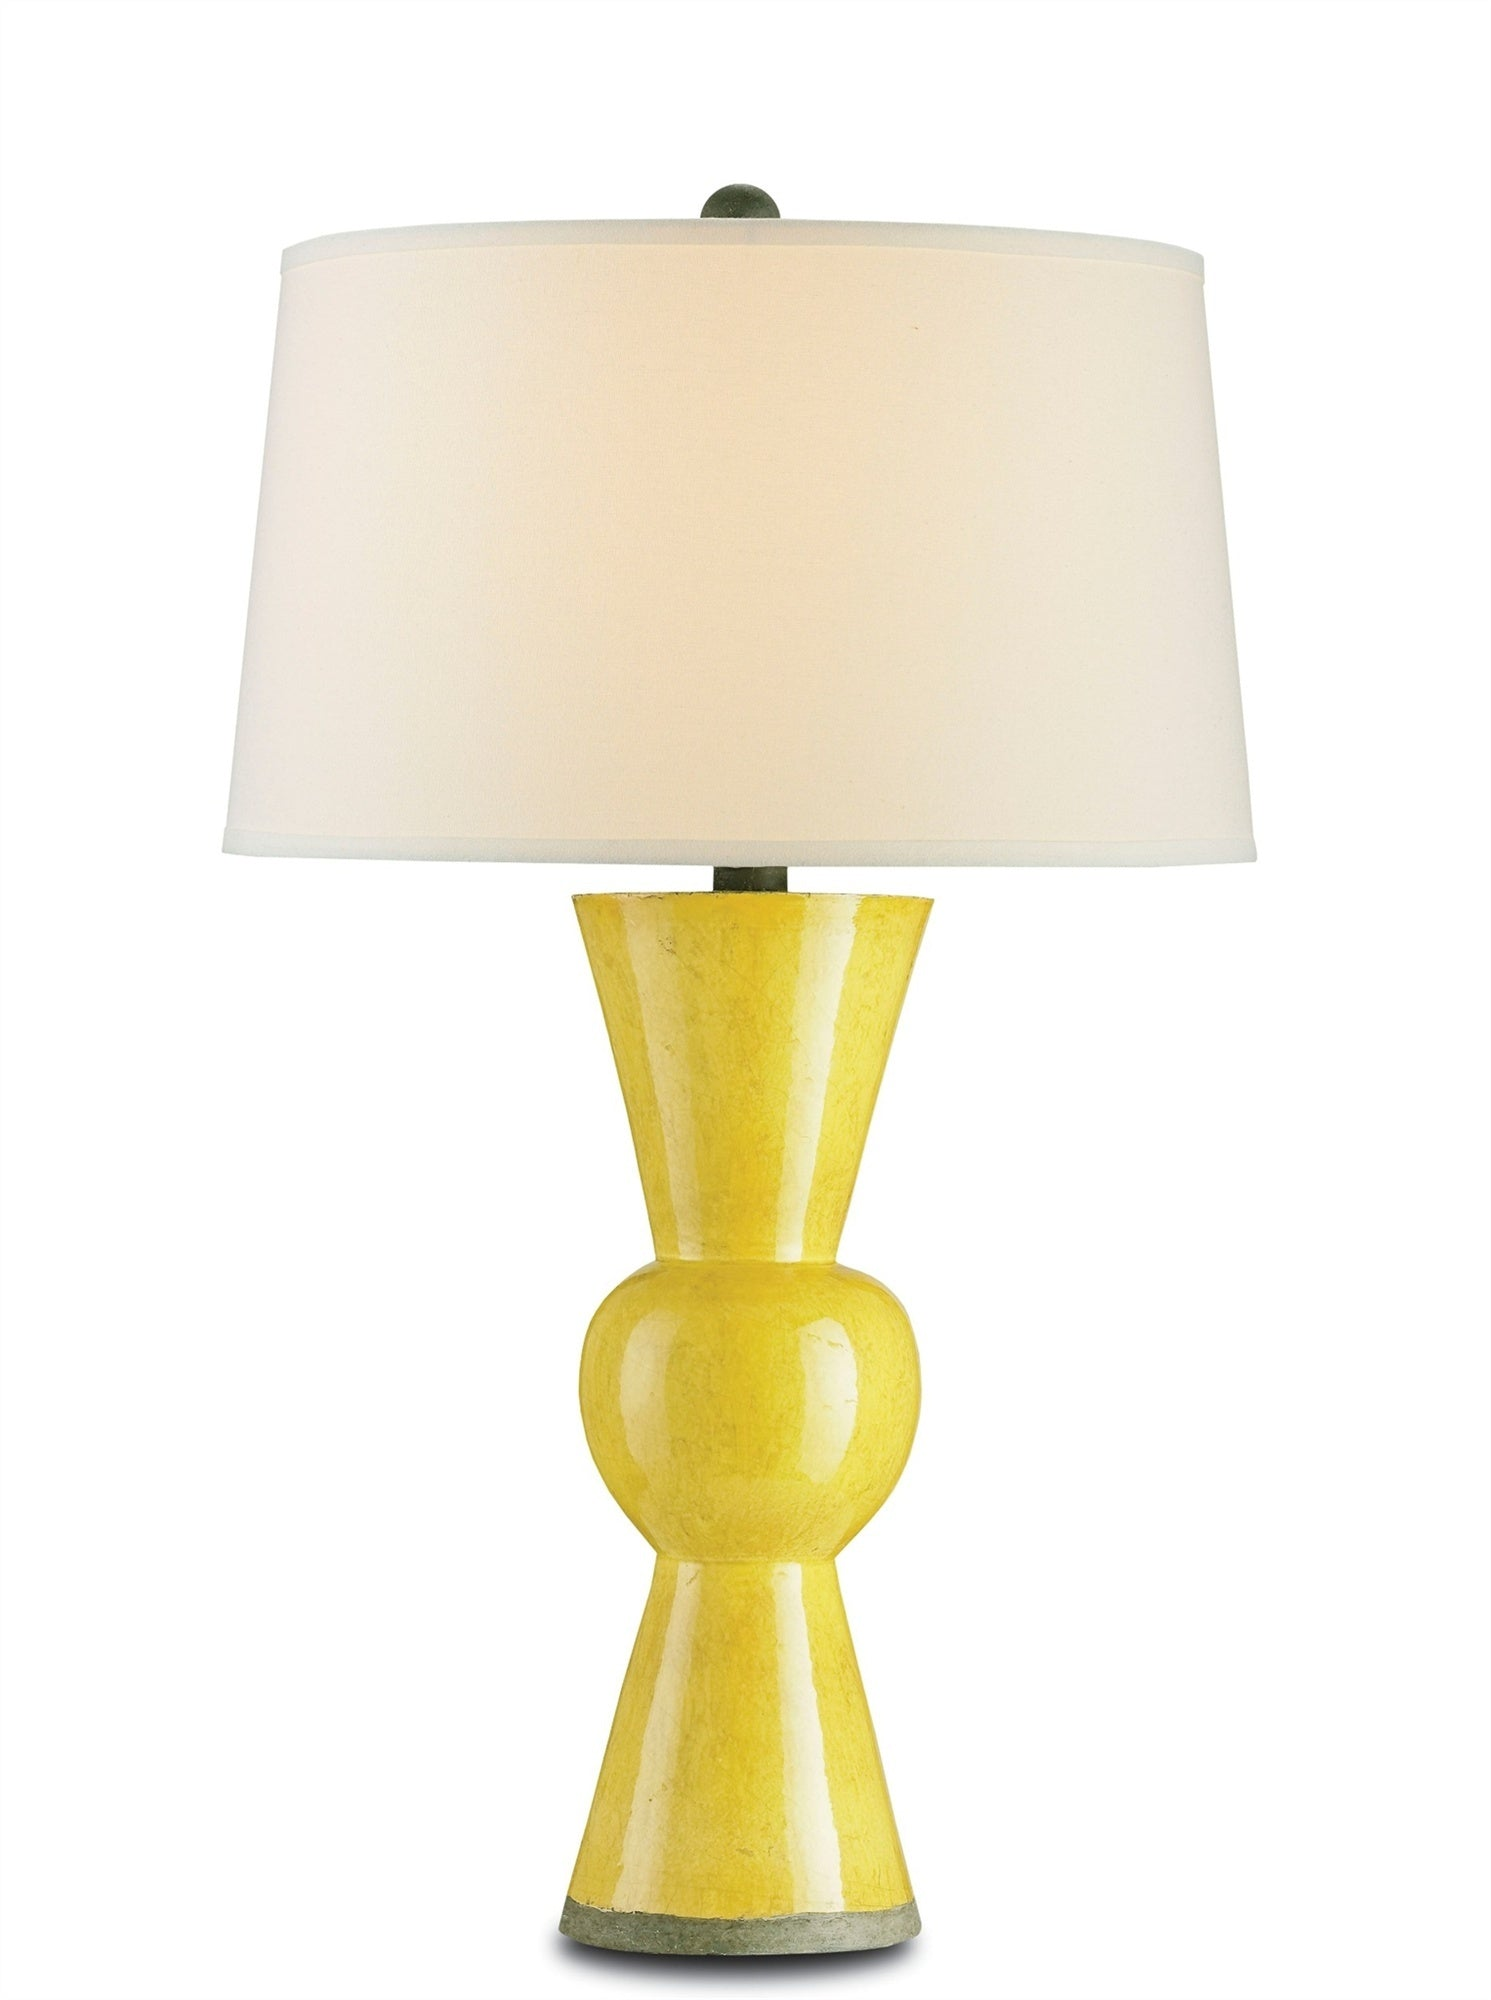 Currey and Company Upbeat Table Lamp, Yellow 6382